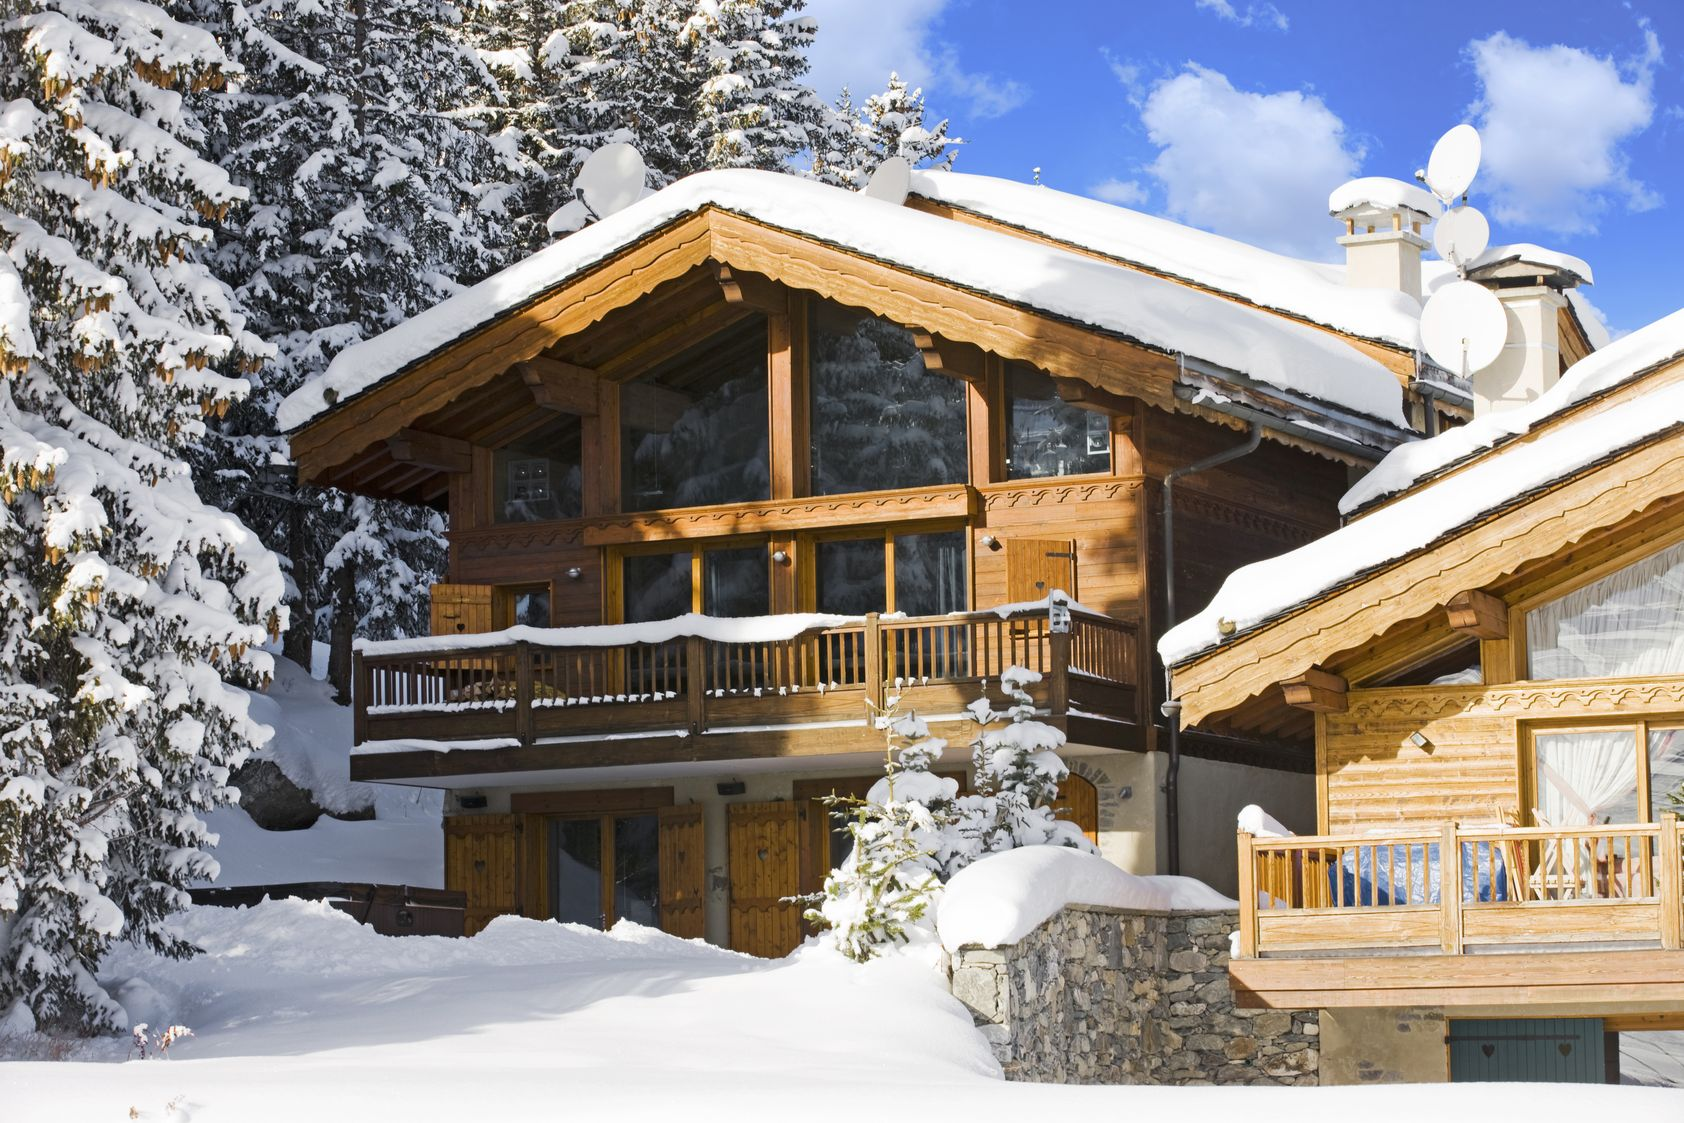 rental chalet courchevel 1850 10 people monic1002